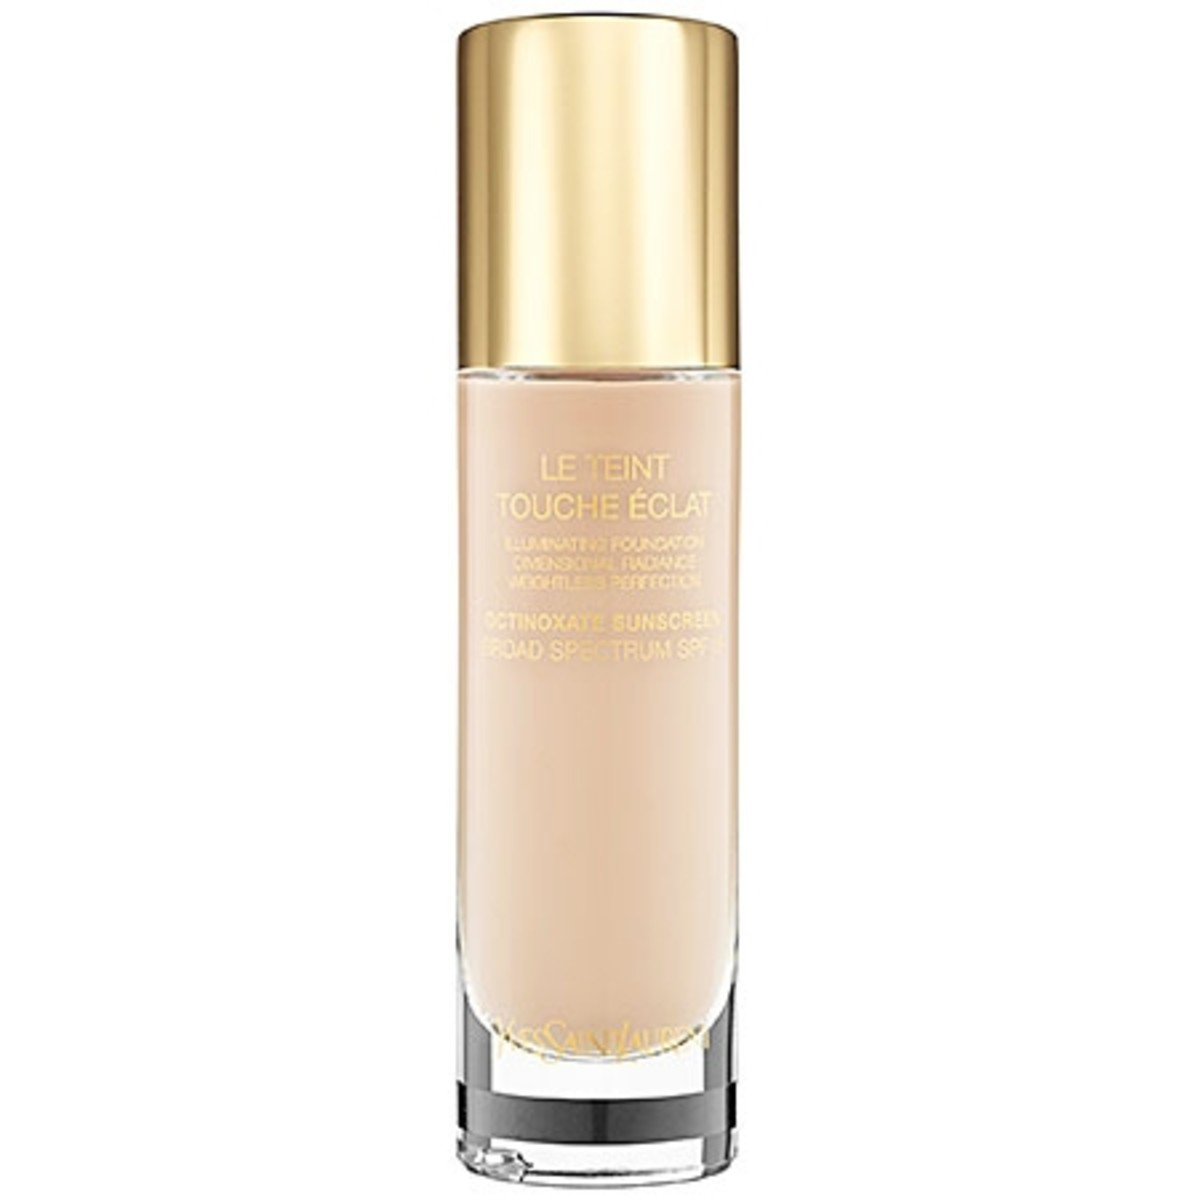 Yves Saint Laurent Le Teint Touche Eclat Illuminating Foundation SPF 19 in Beige 10